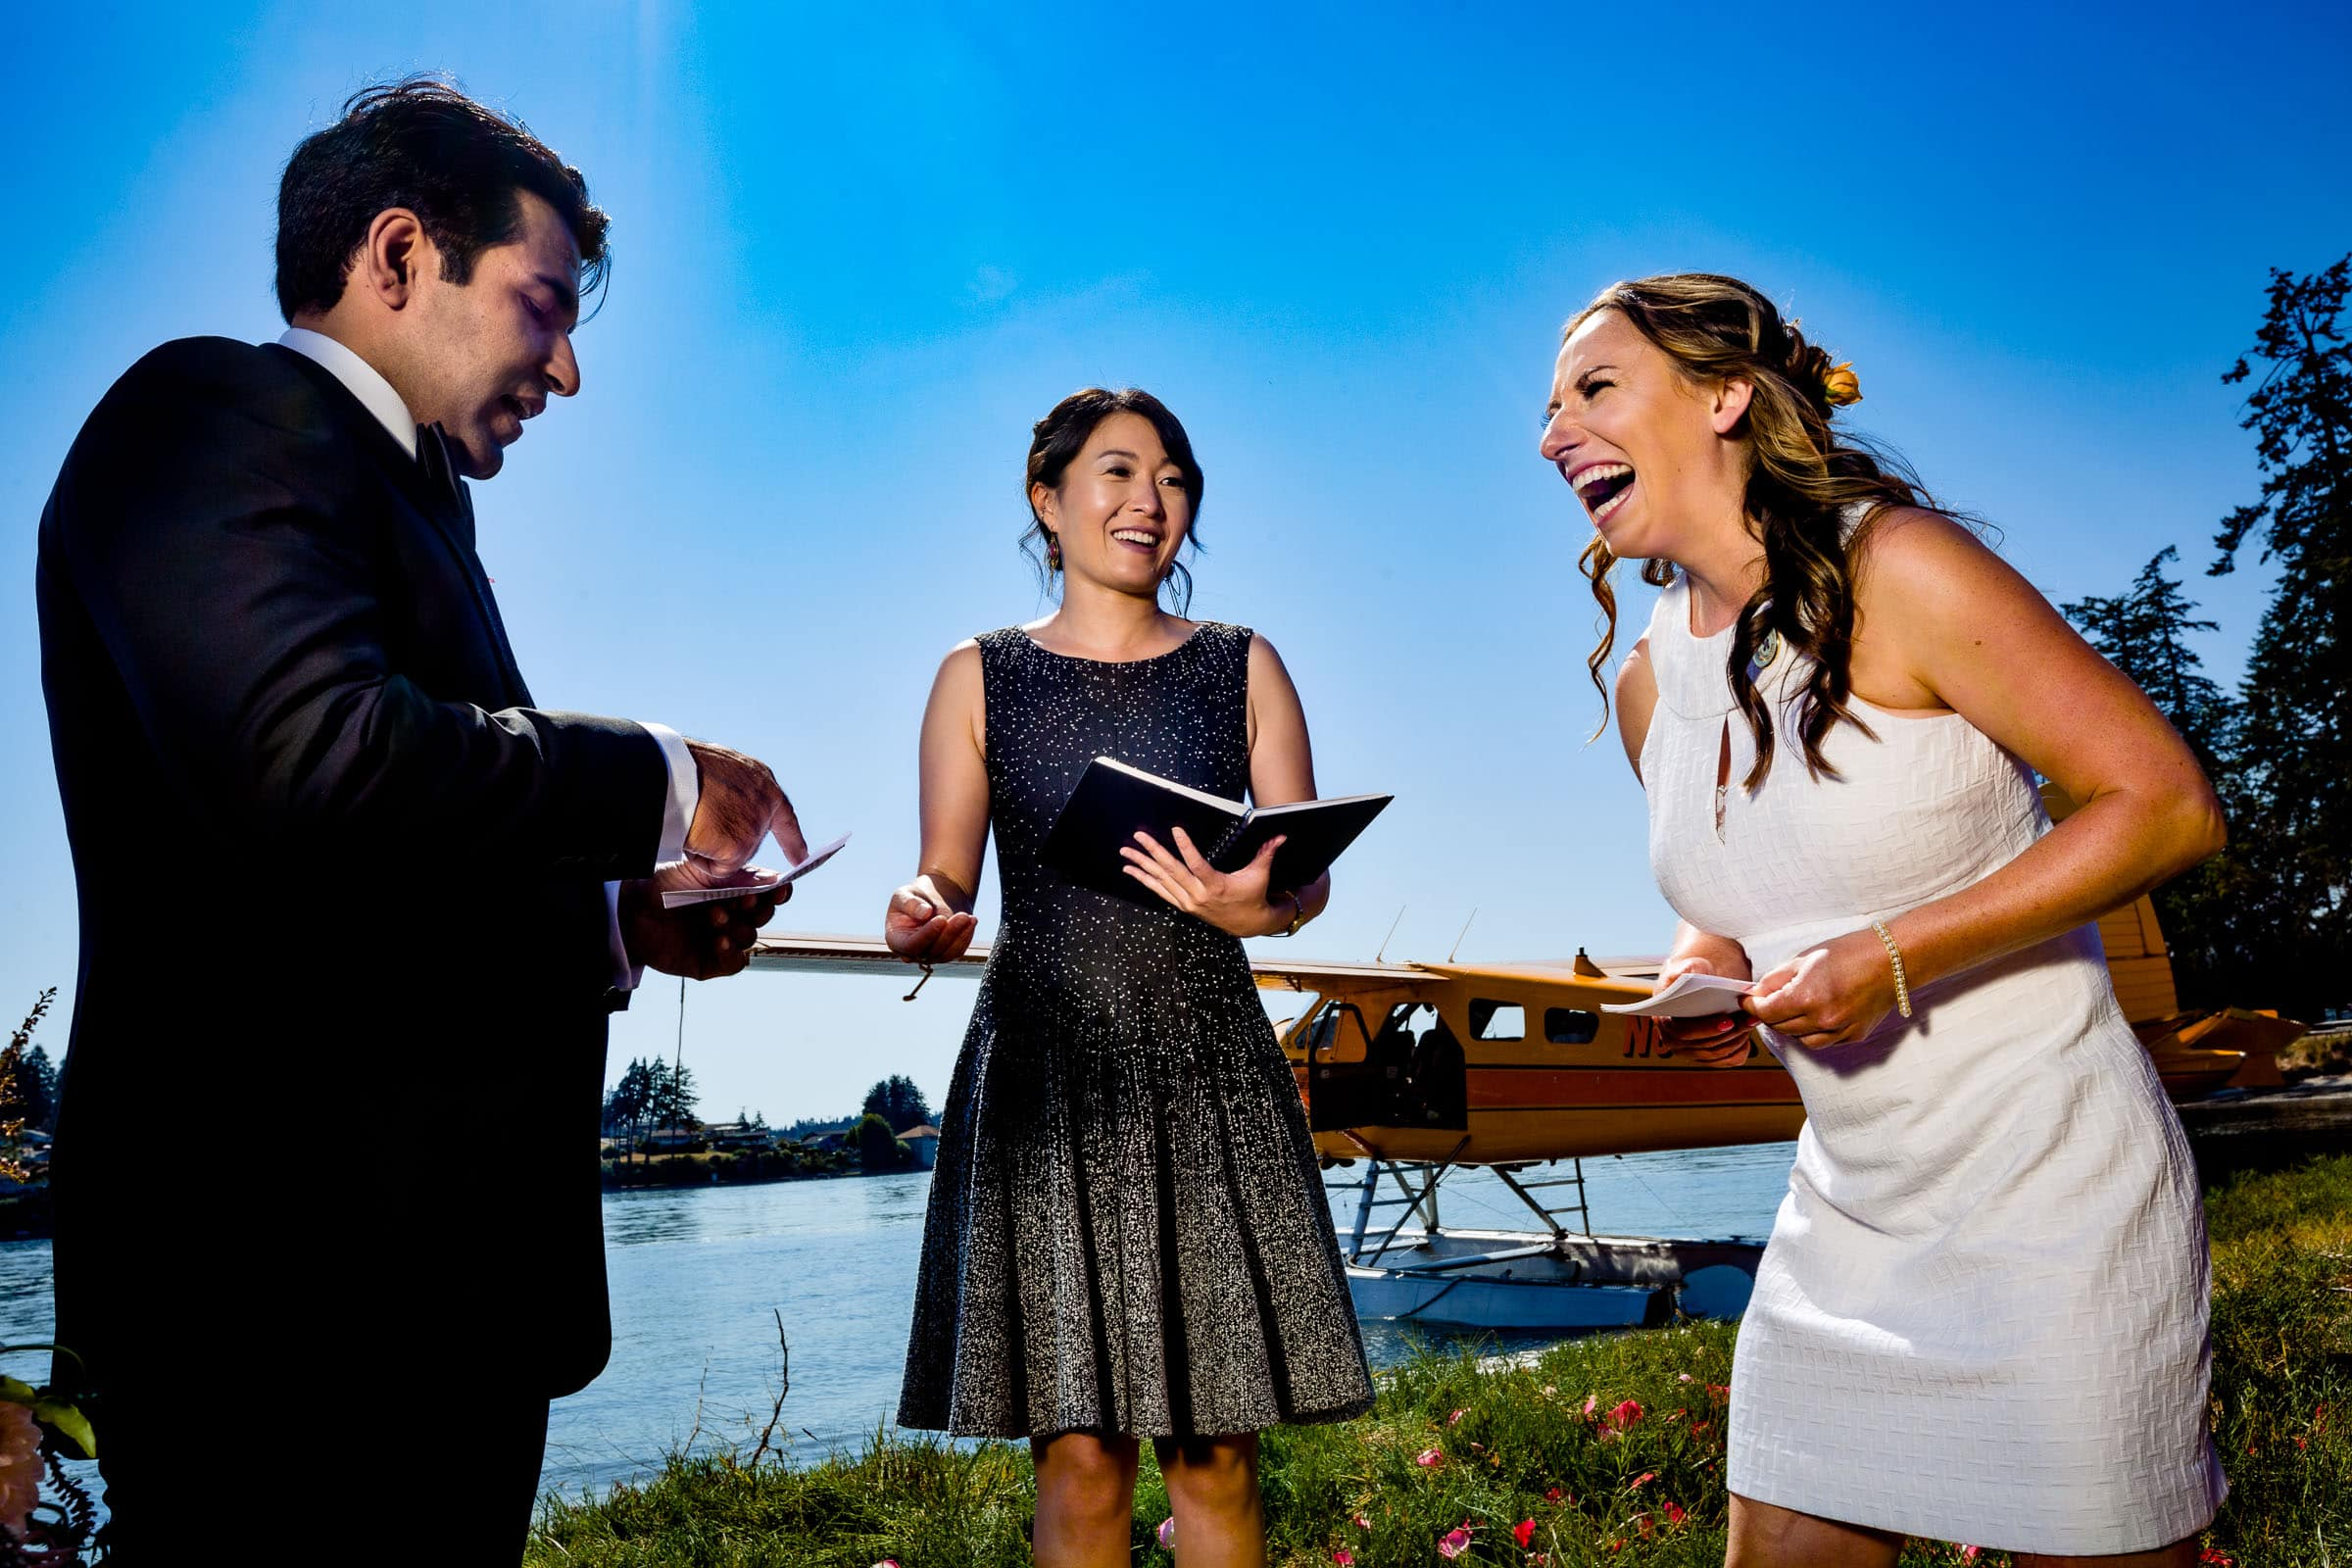 Bride laughing during ceremony at their Alderbrook elopement